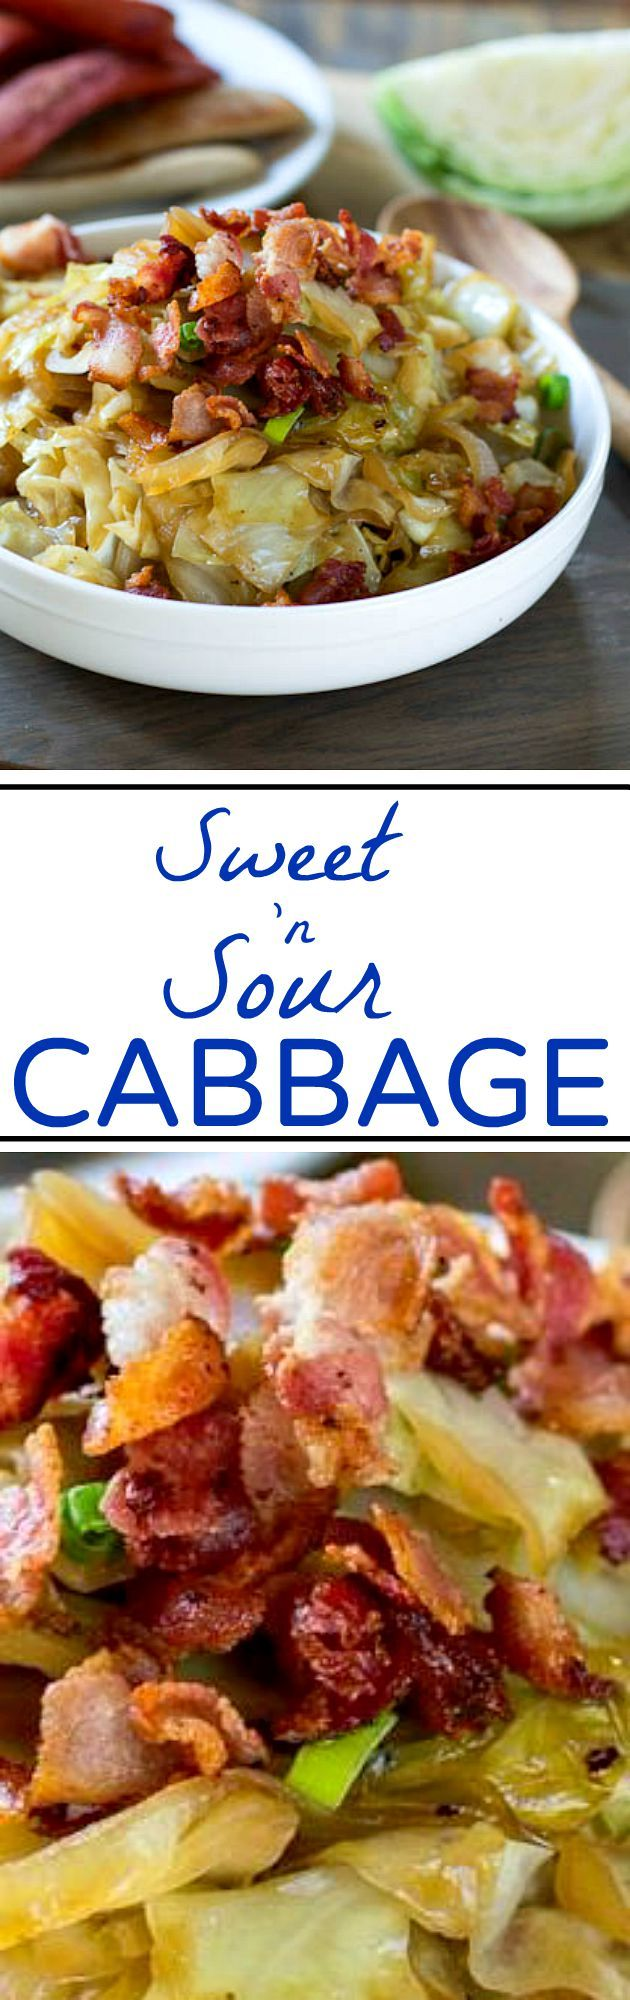 Sweet and Sour Cabbage with Bacon -The perfect combination of sweet, salty, and sour.